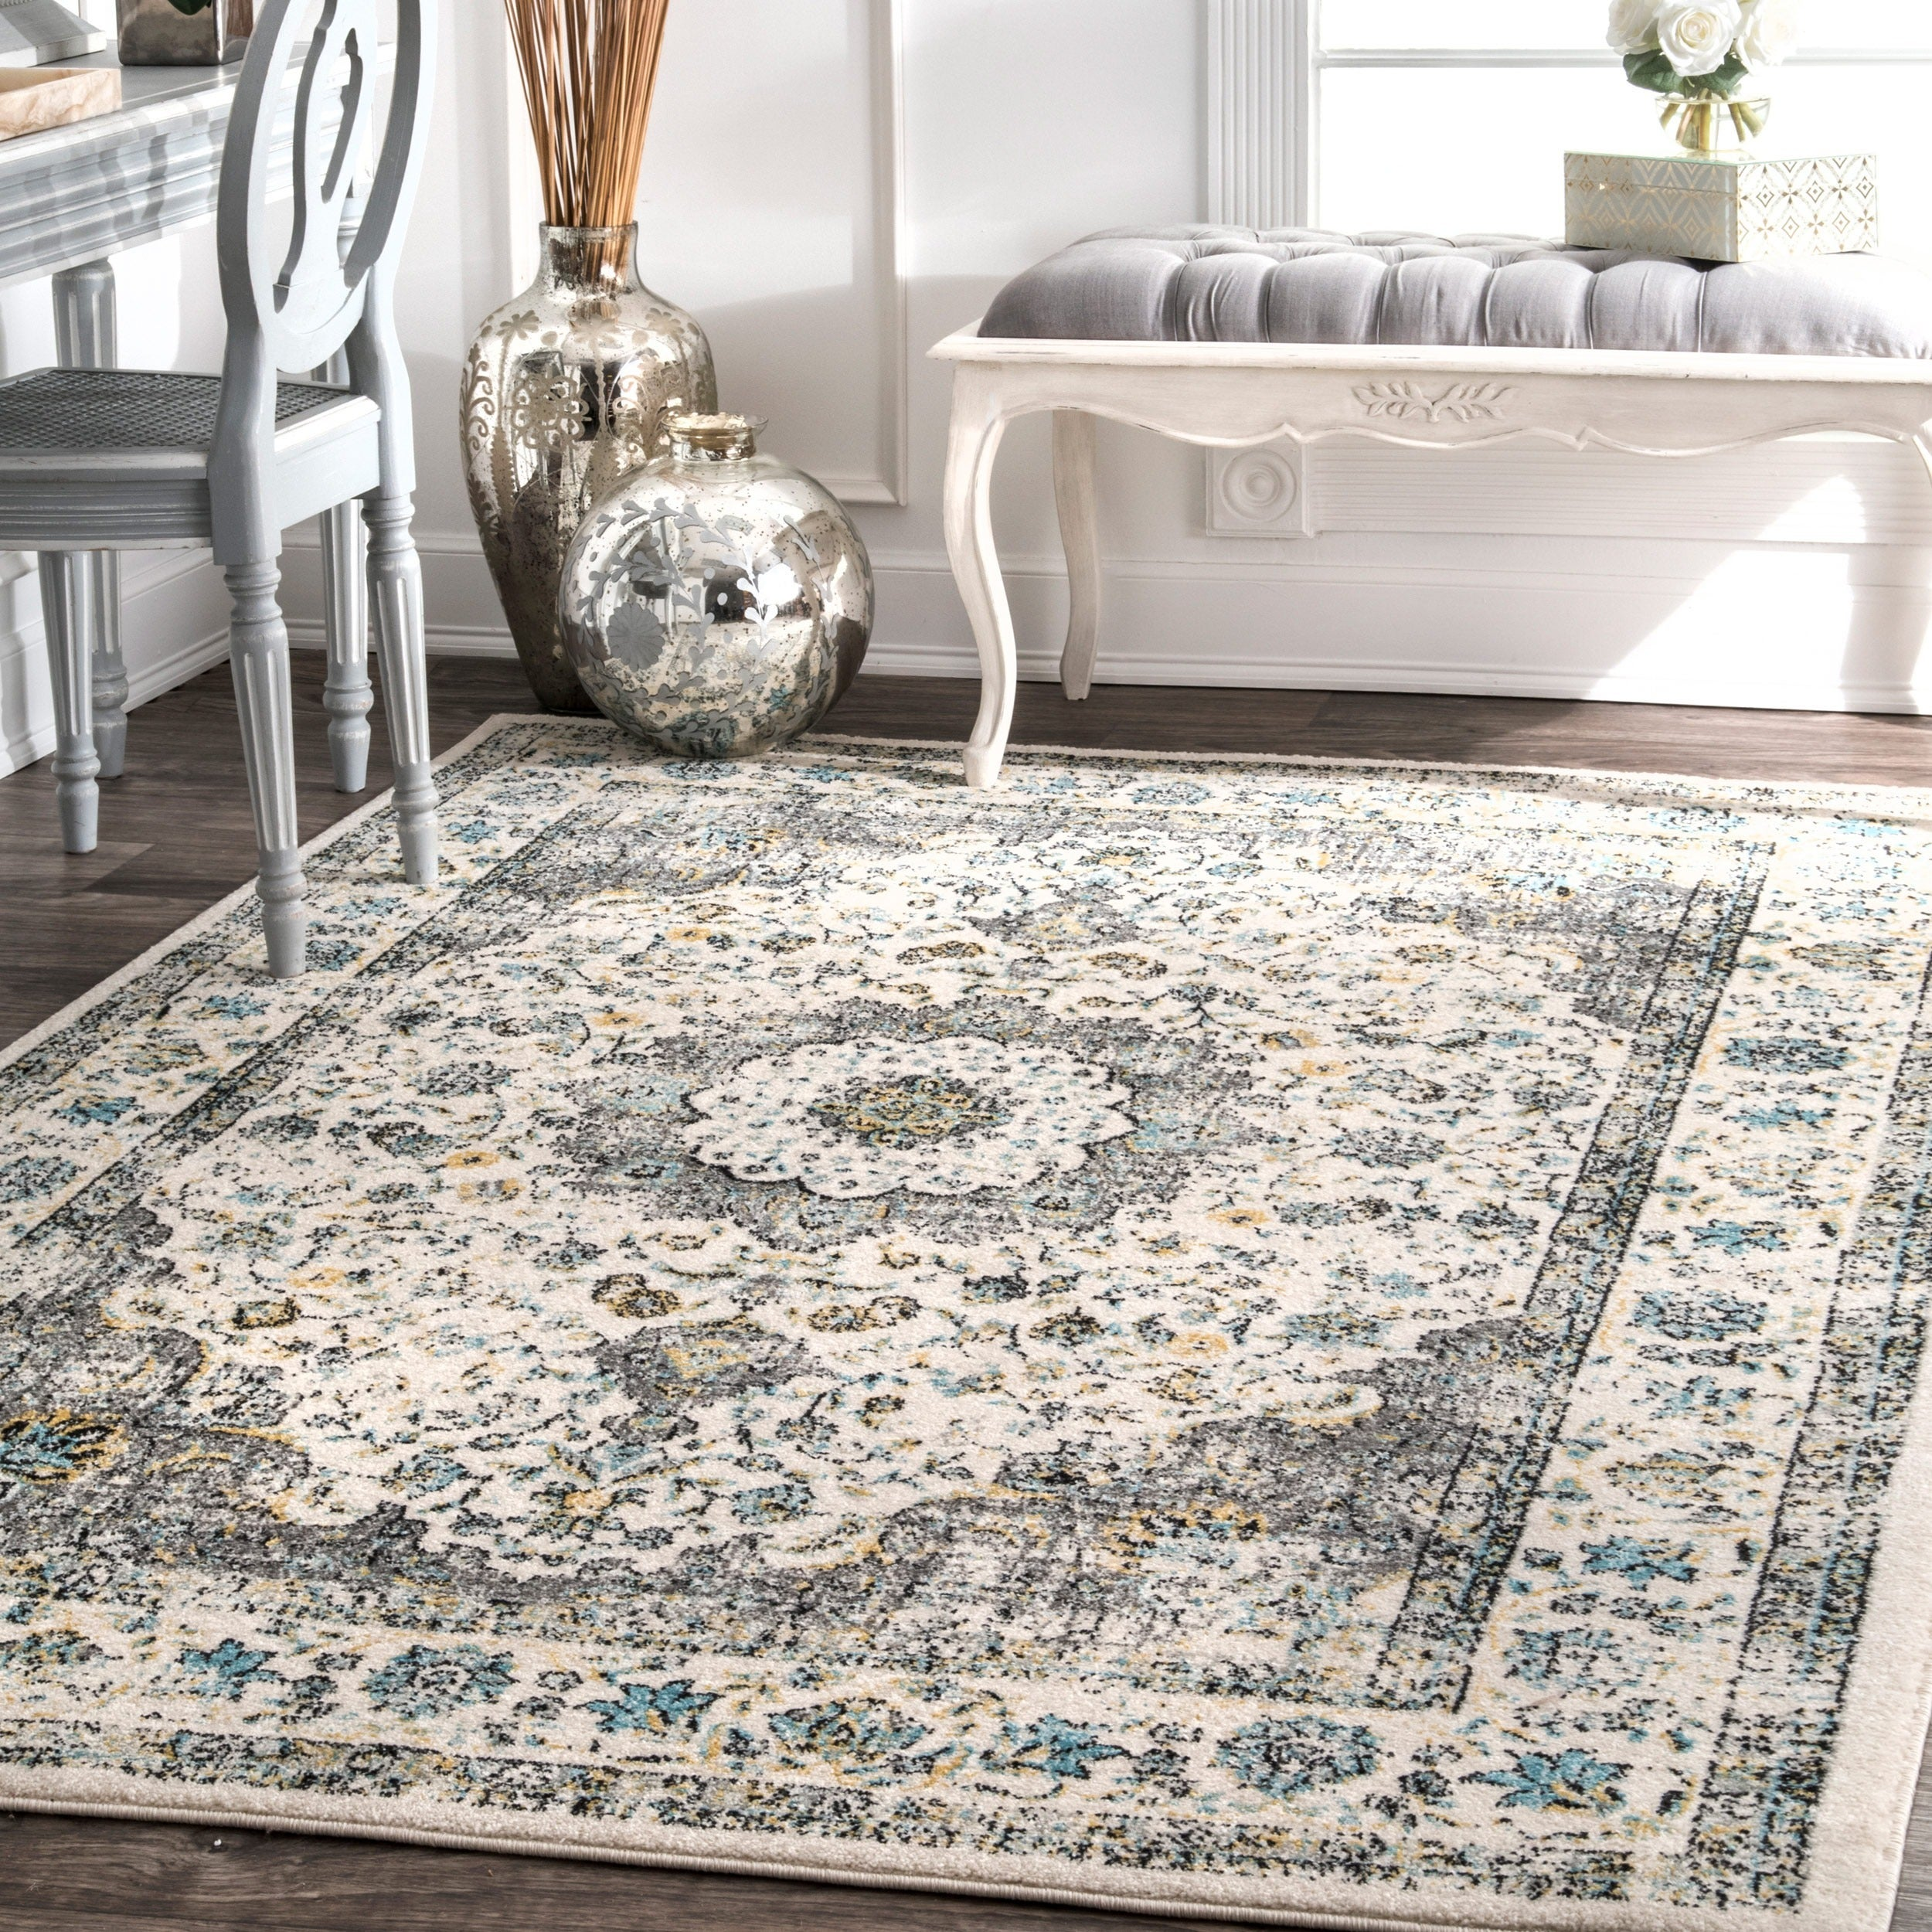 Shop Nuloom Traditional Persian Vintage Rug 4 X 6